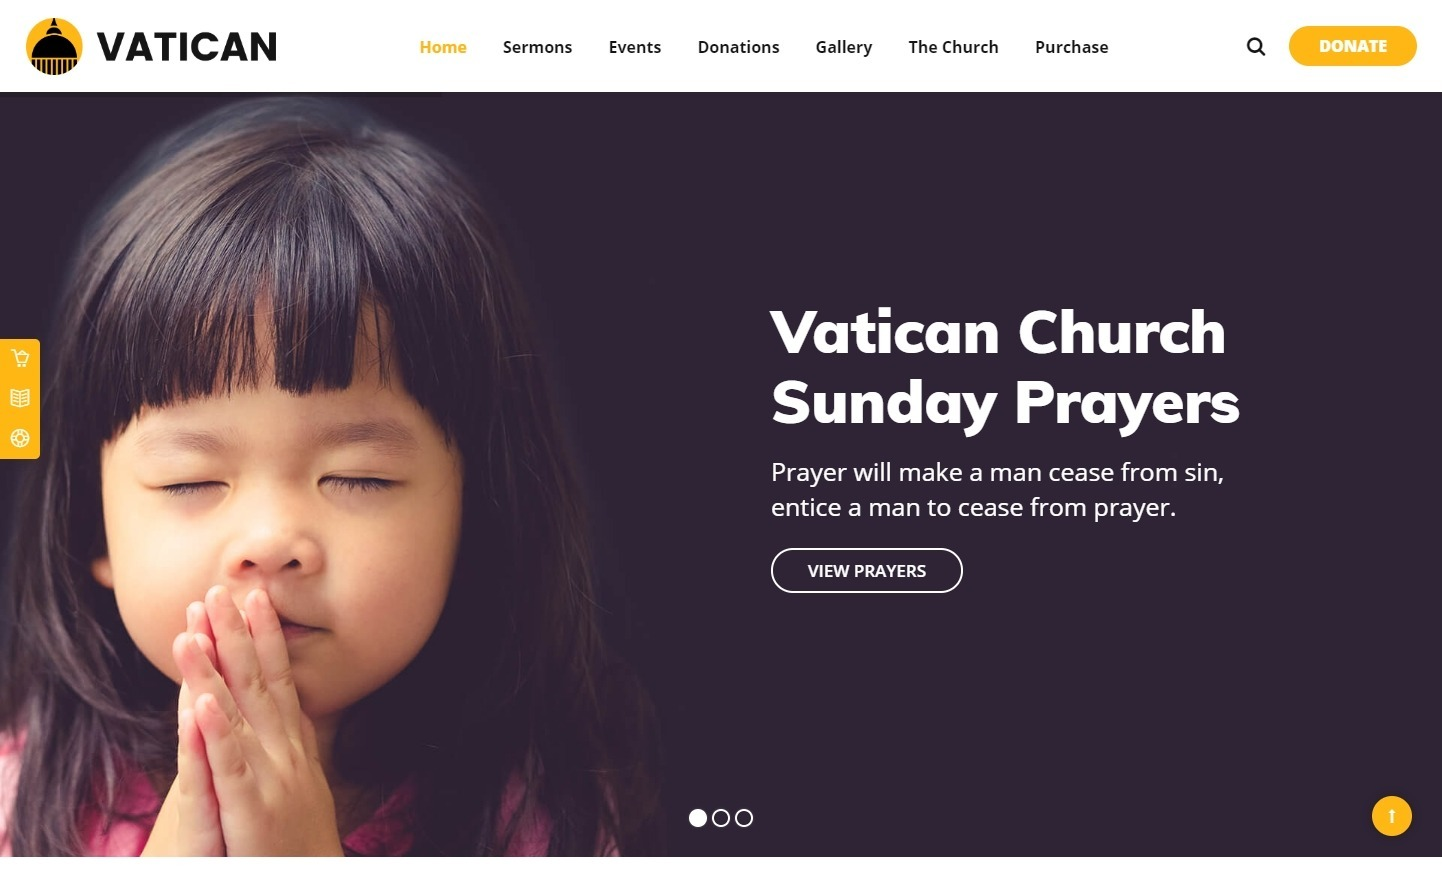 Vatican Theme for Nonprofits and Church Organizations